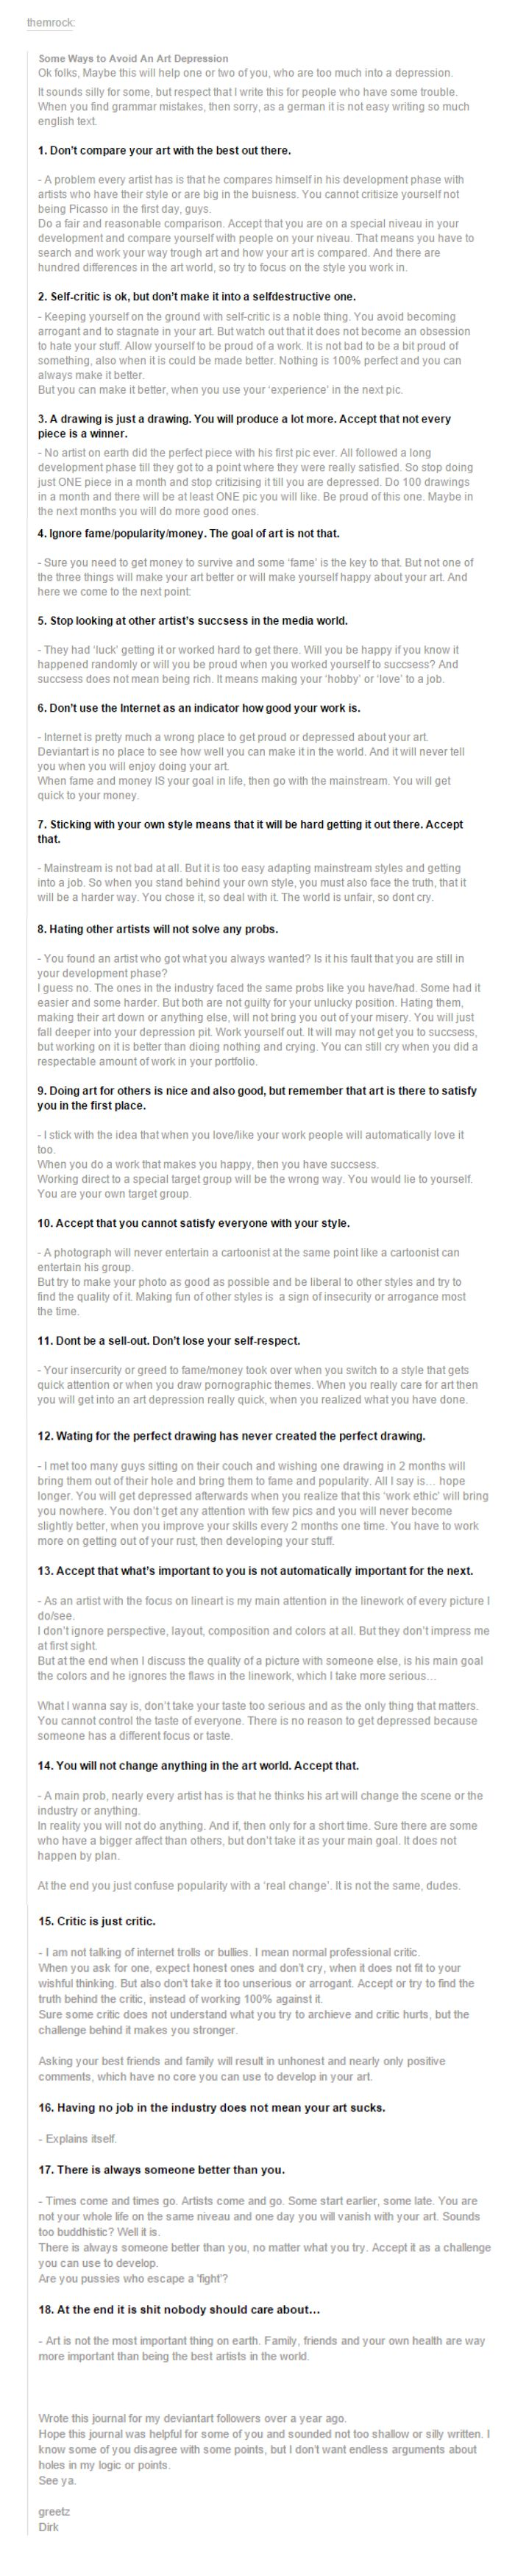 Pin By Thelastderpicorn On Art And Art Problems Writing Resources Writing Tips Writing